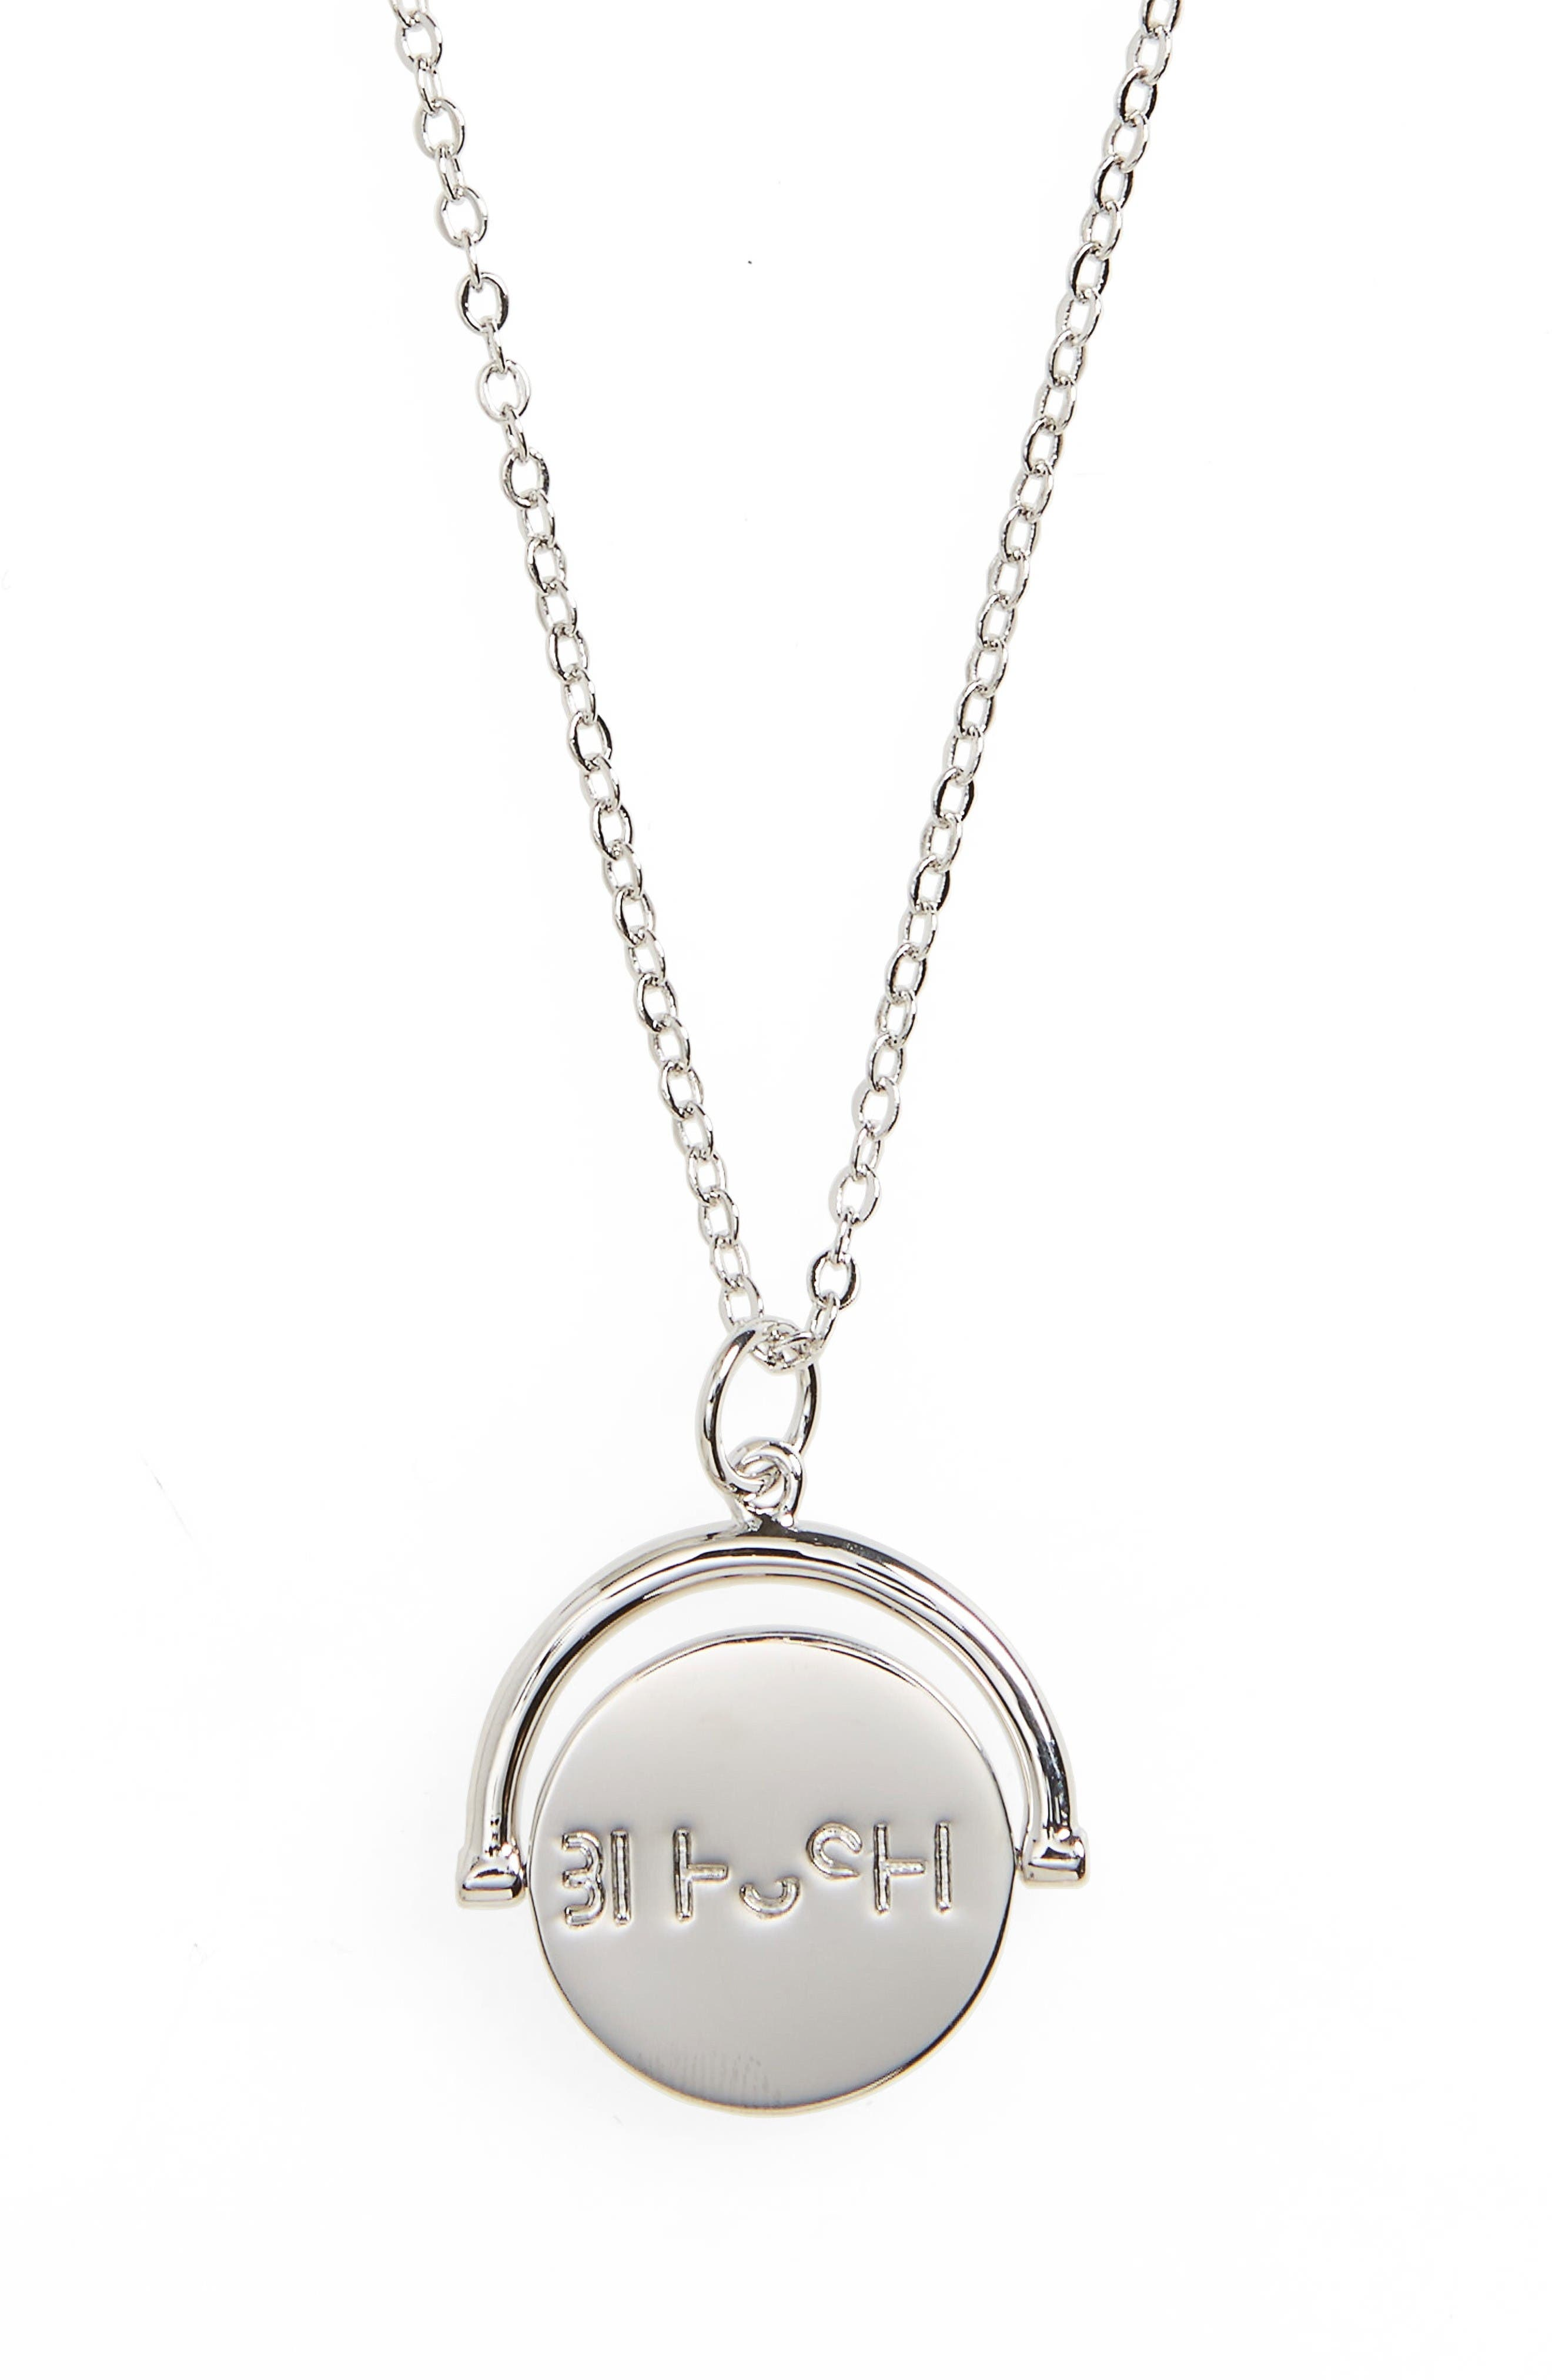 Blessed Love Code Charm Necklace,                         Main,                         color, Blessed/ Silver